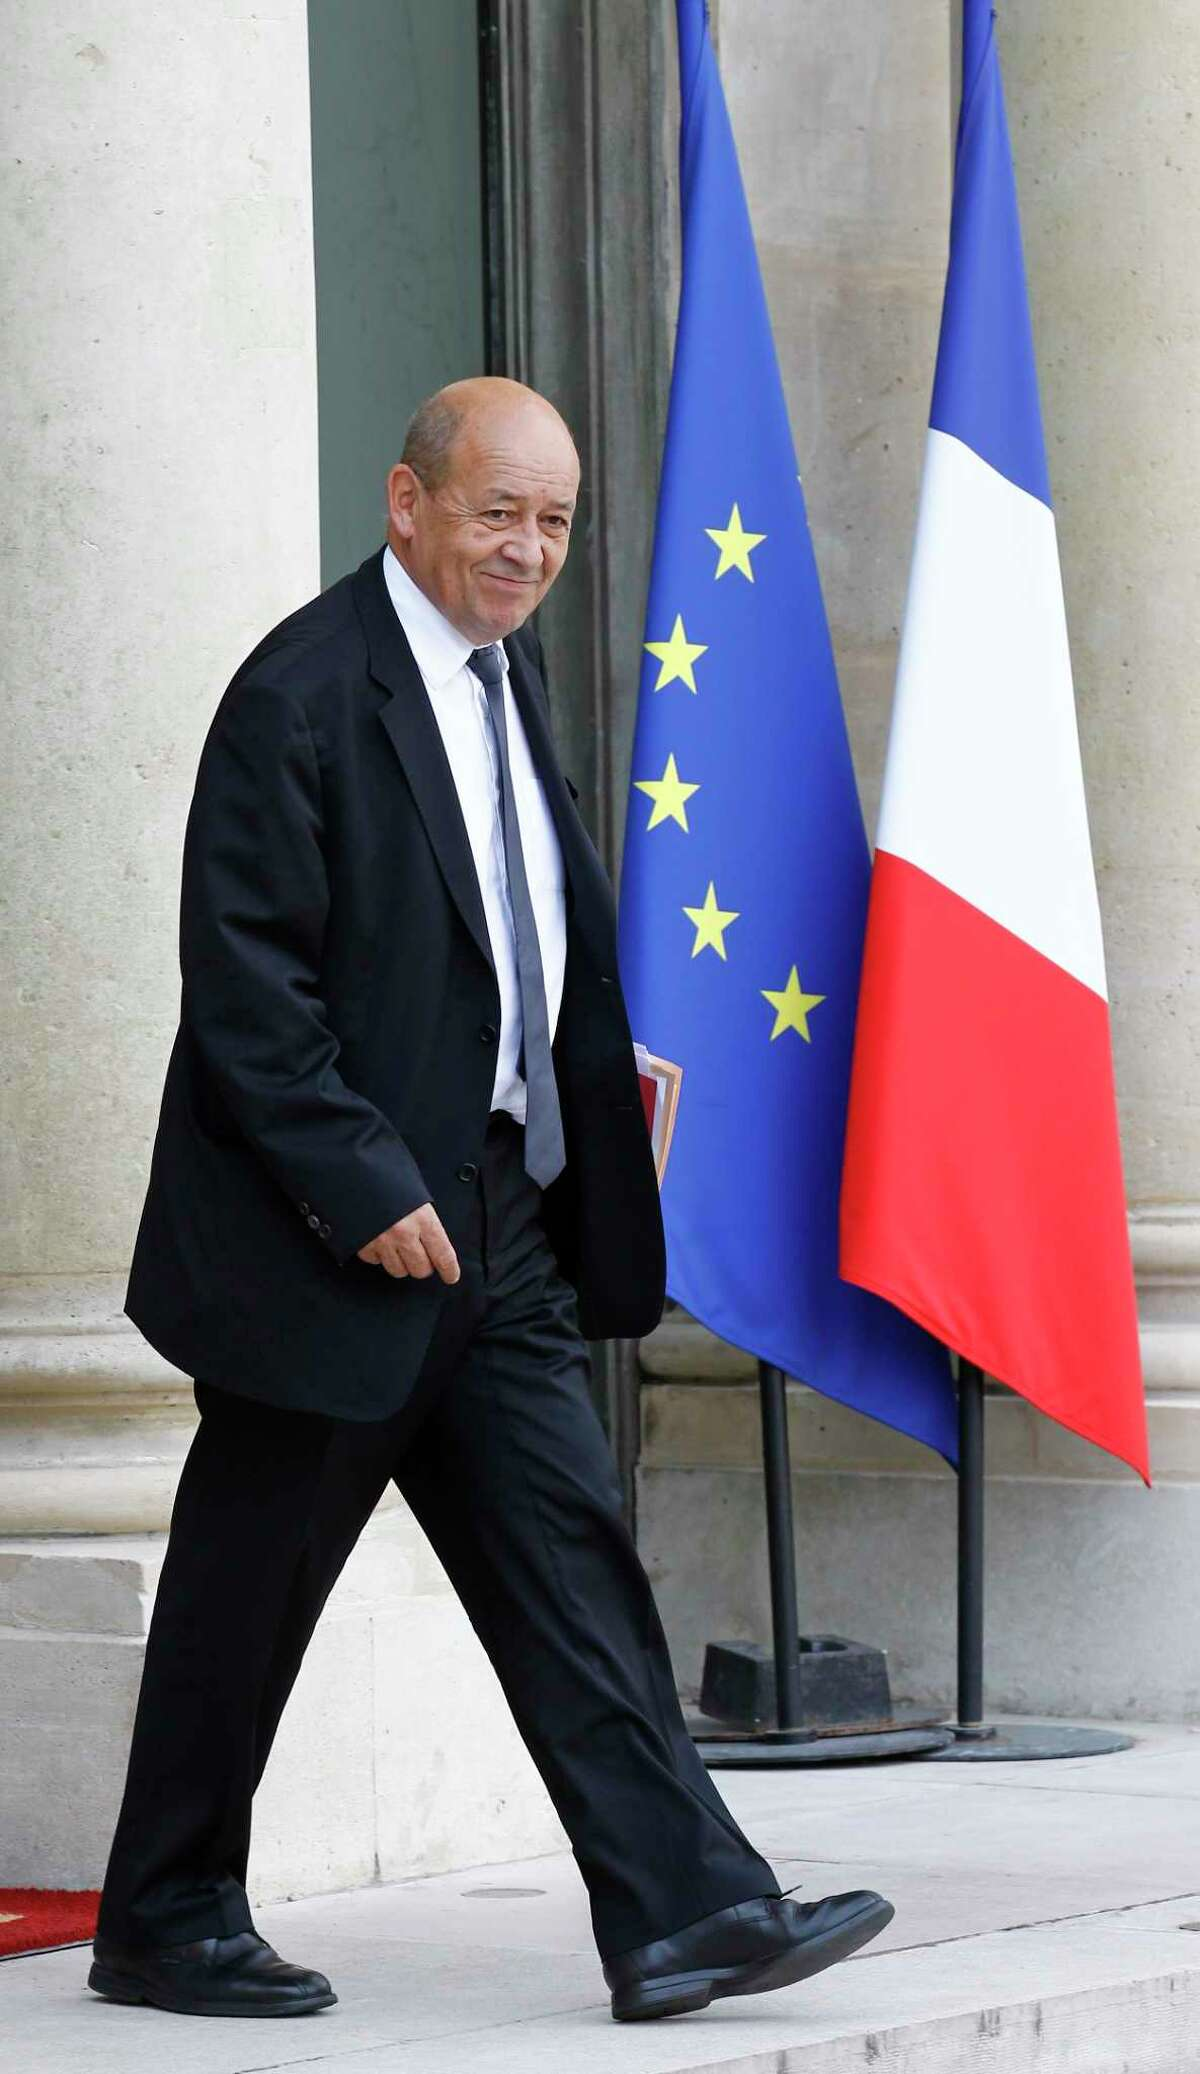 French Defense Minister Jean-Yves Le Drian leaves the Elysee Palace following a special defense meeting with French President Francois Hollande in Paris, Thursday Sept. 25, 2014. France's defense minister says the country is considering whether to extend airstrikes to Syria, and top military officials where meeting to define the country's mission against the Islamic State group. (AP Photo/Remy de la Mauviniere)